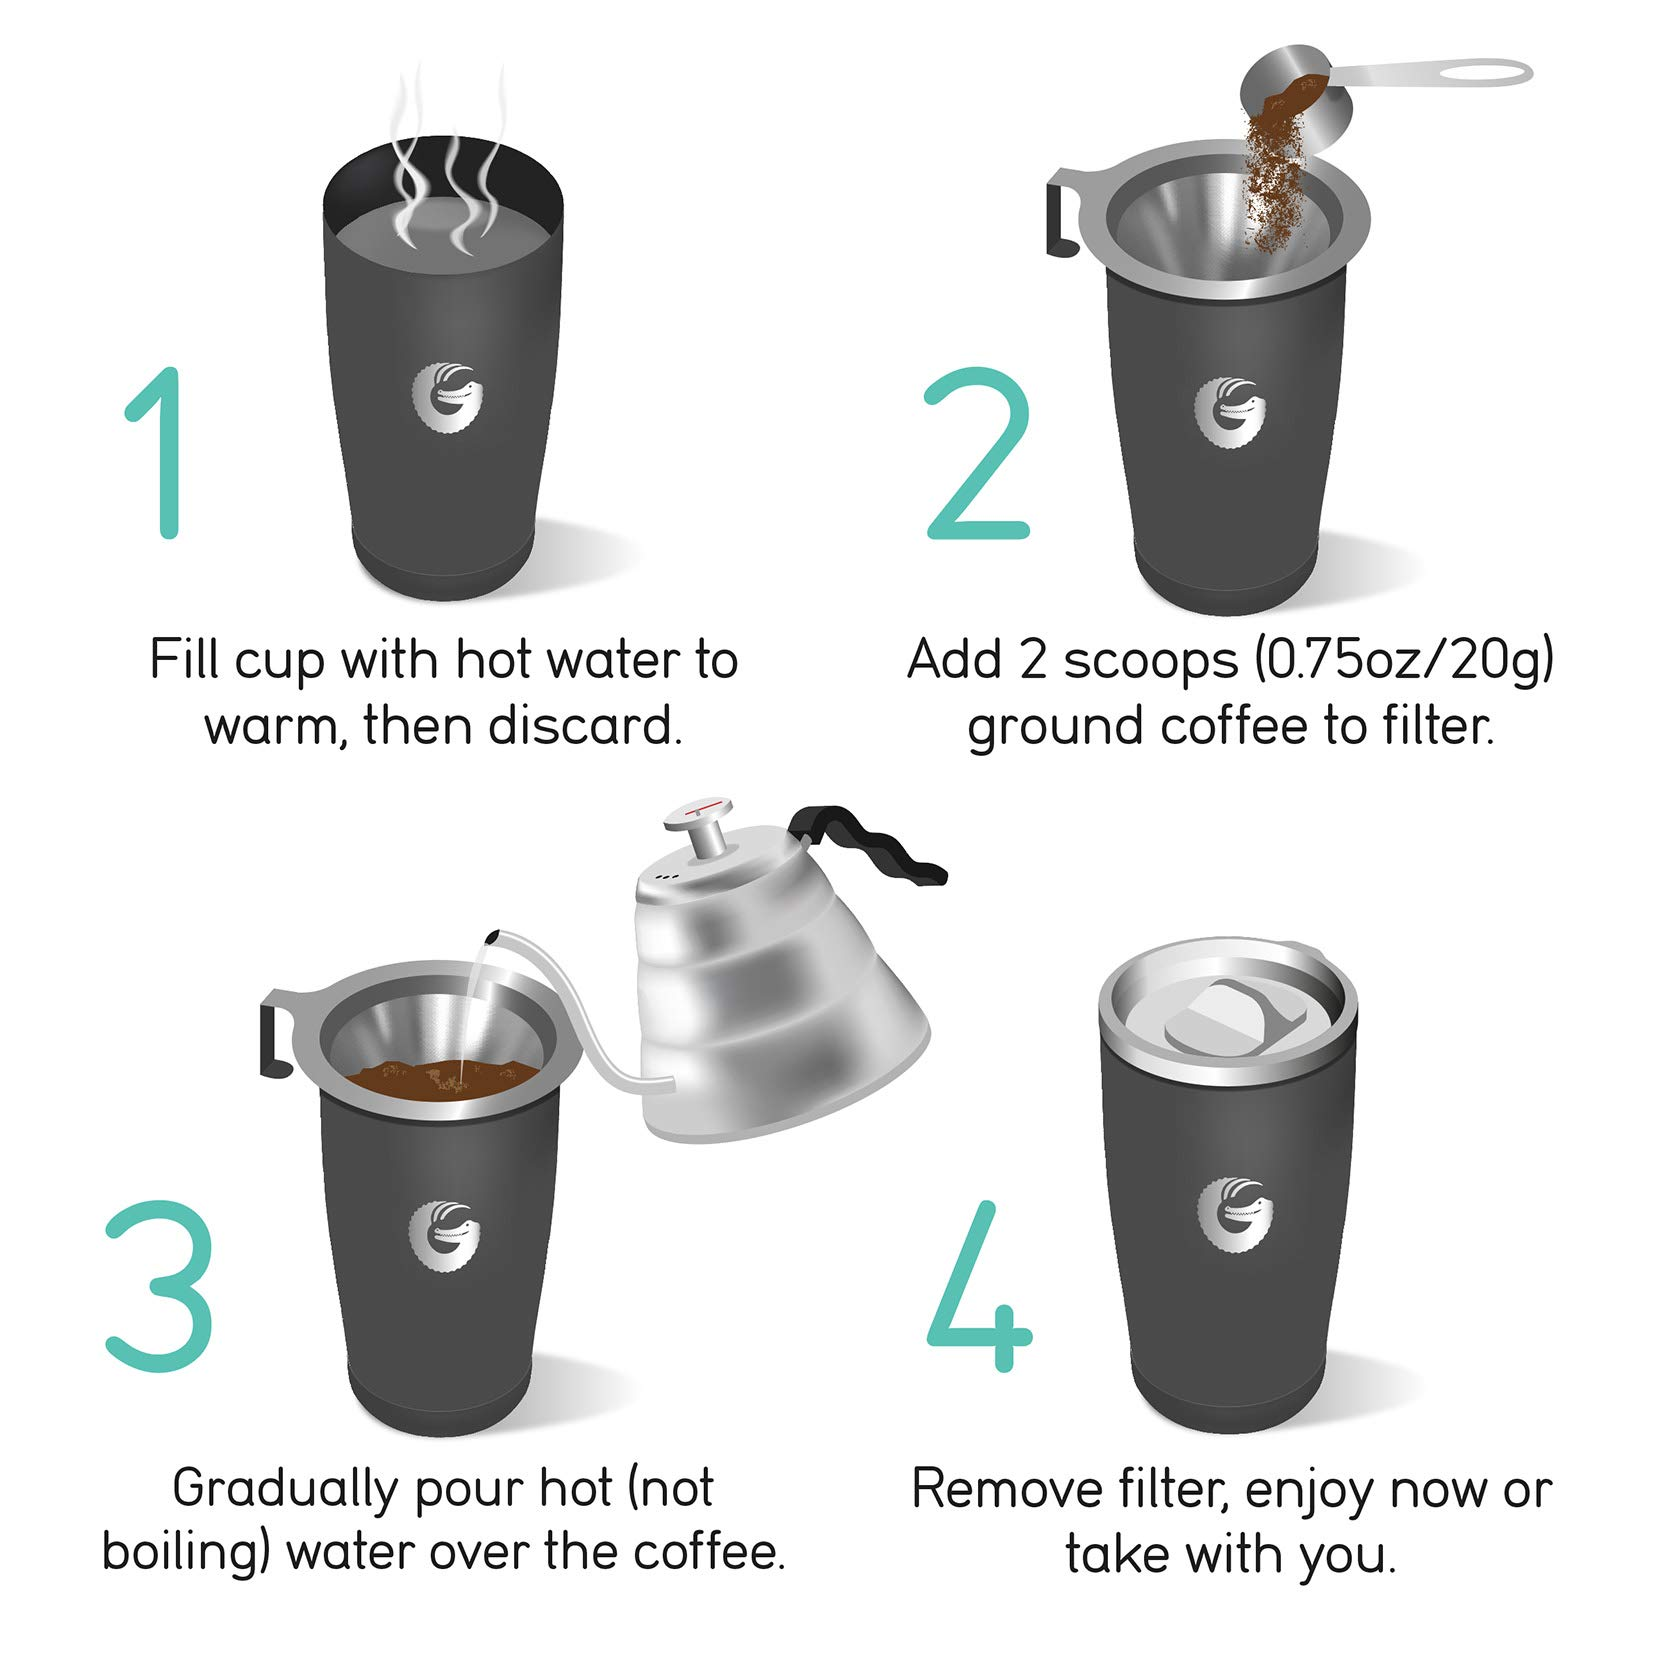 Coffee Gator Pour Over Coffee Maker - All in One Thermal Travel Mug and Brewer - Vacuum Insulated Stainless Steel - 20 ounce - Silver by Coffee Gator (Image #6)